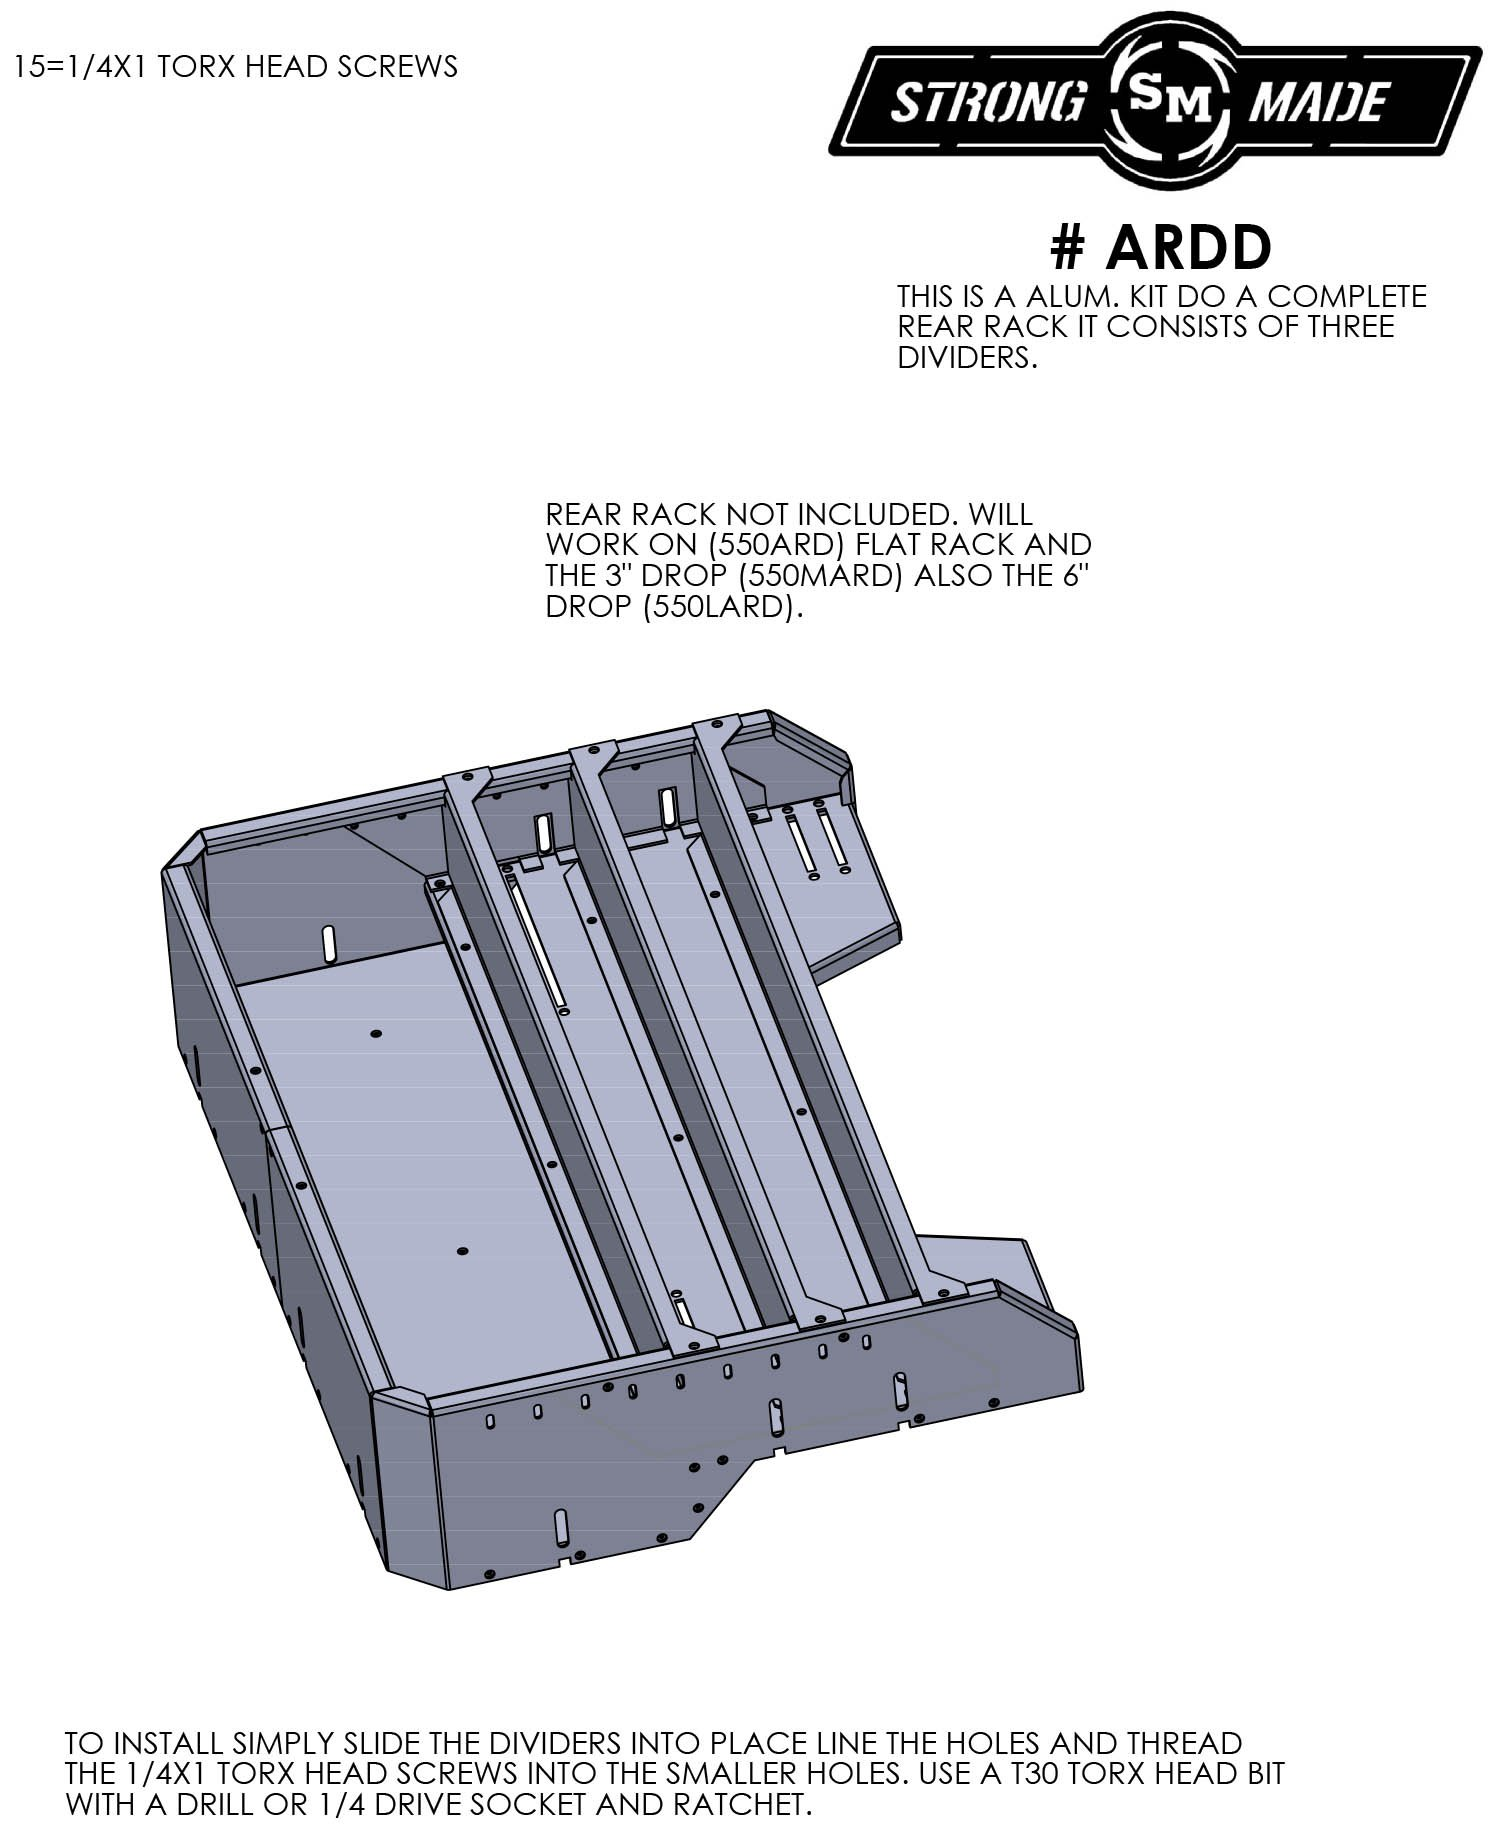 Divider Kit For ARD Rear Racks by Strong Made ARDD